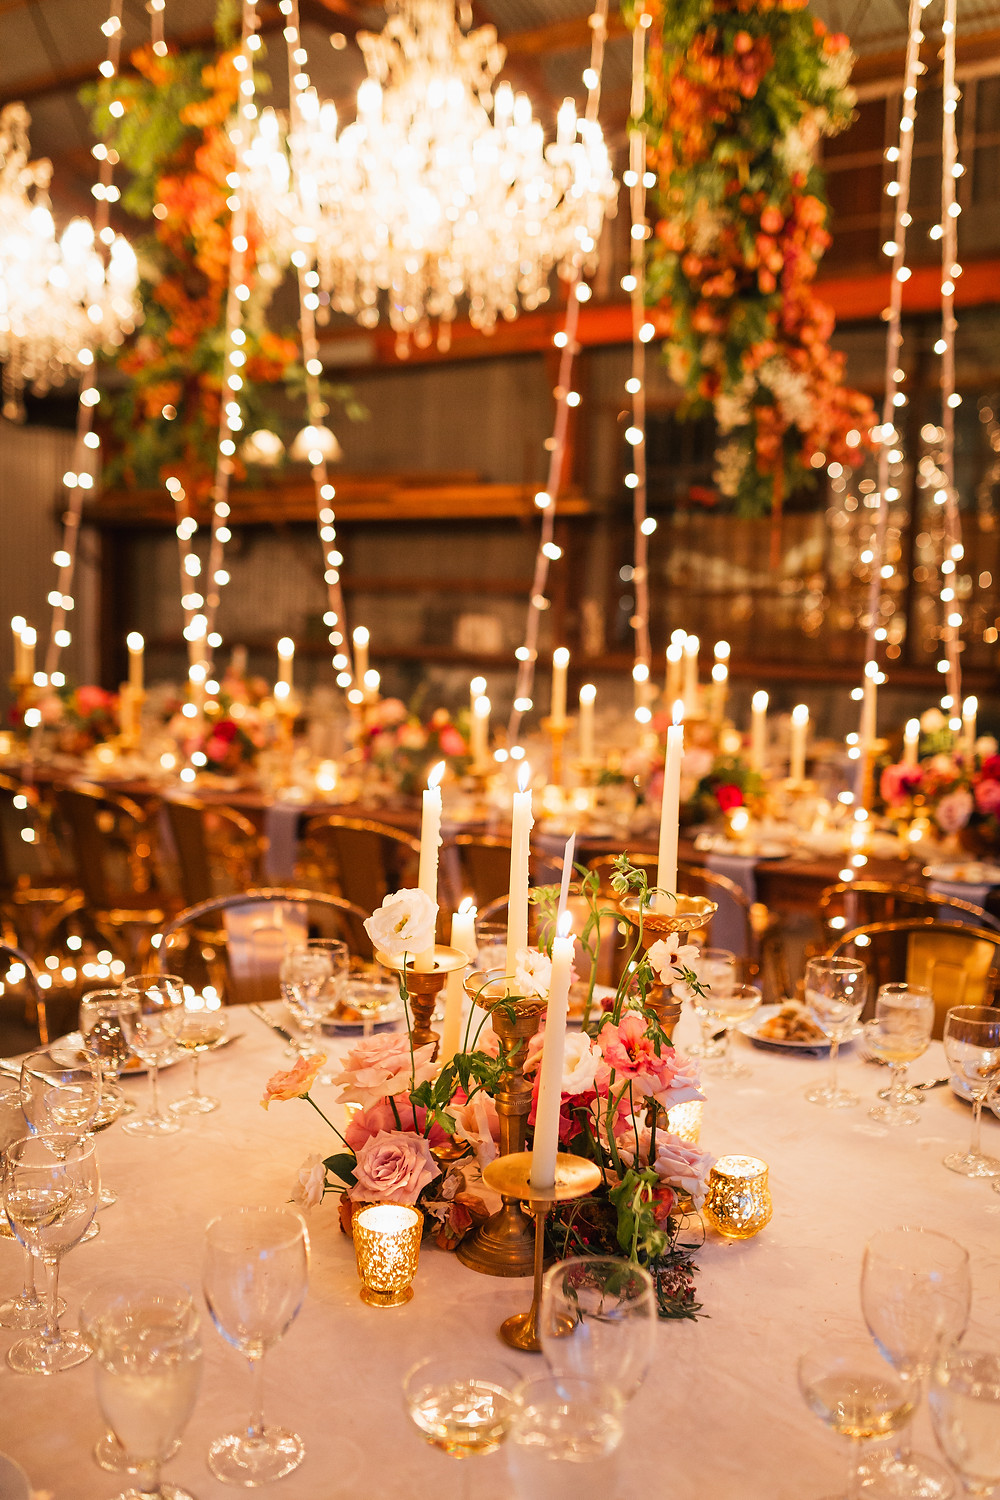 Lovegood Wedding & Event Rentals, New Orleans Vintage Rental Company for Corporate, Parties, and Weddings | Lounge Furniture in NOLA, Specialty Rentals, Decor across the Southeast, Classic Farm Tables with Gold Chairs, Florals and Candles in Old Warehouse